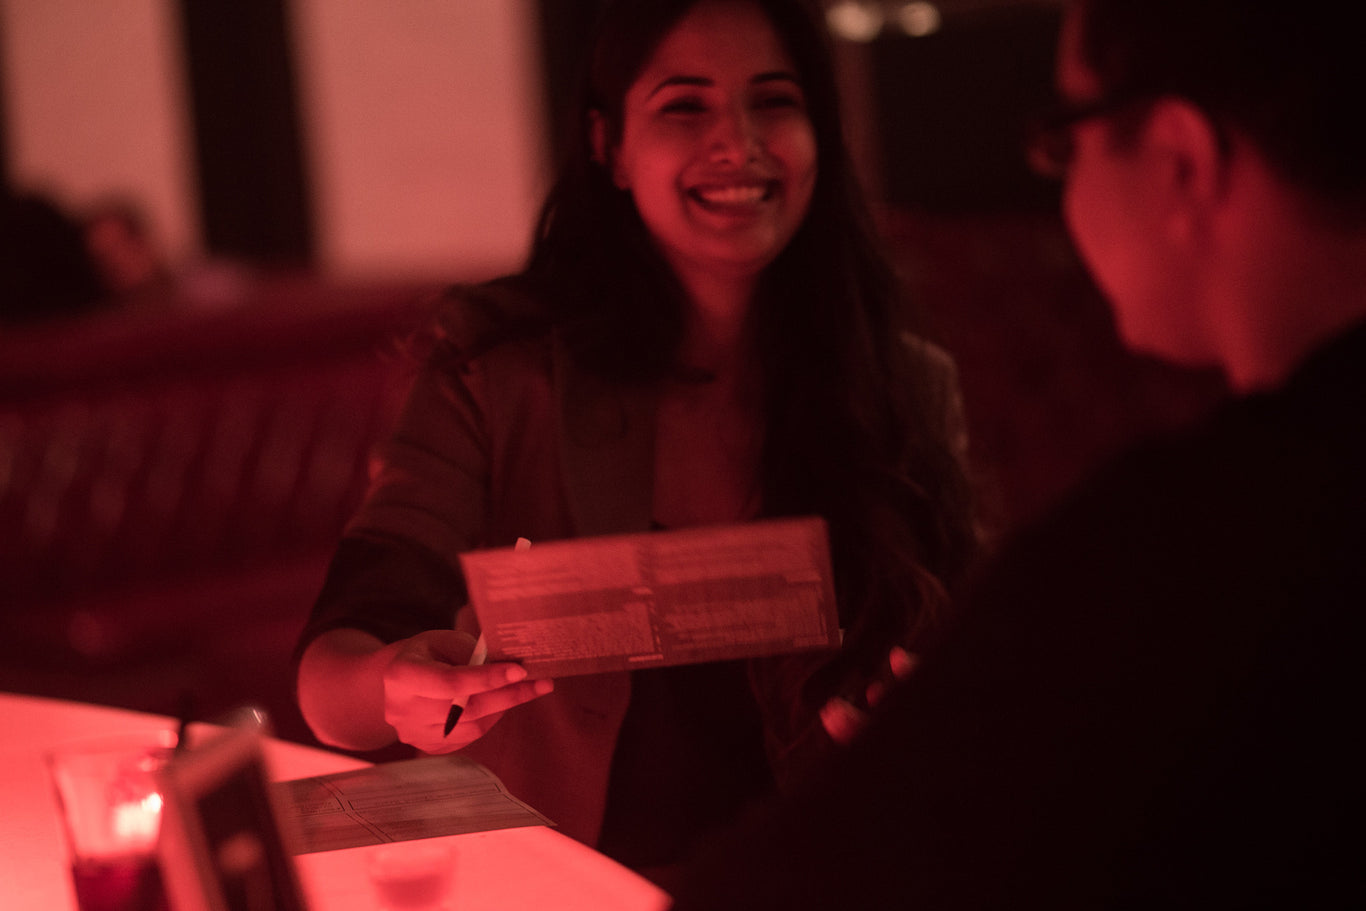 speed dating elite london Speed dating: the happy meal of romance  we needed to find a night where we both fitted into the same age bracket, which happened to be elite speed dating,.